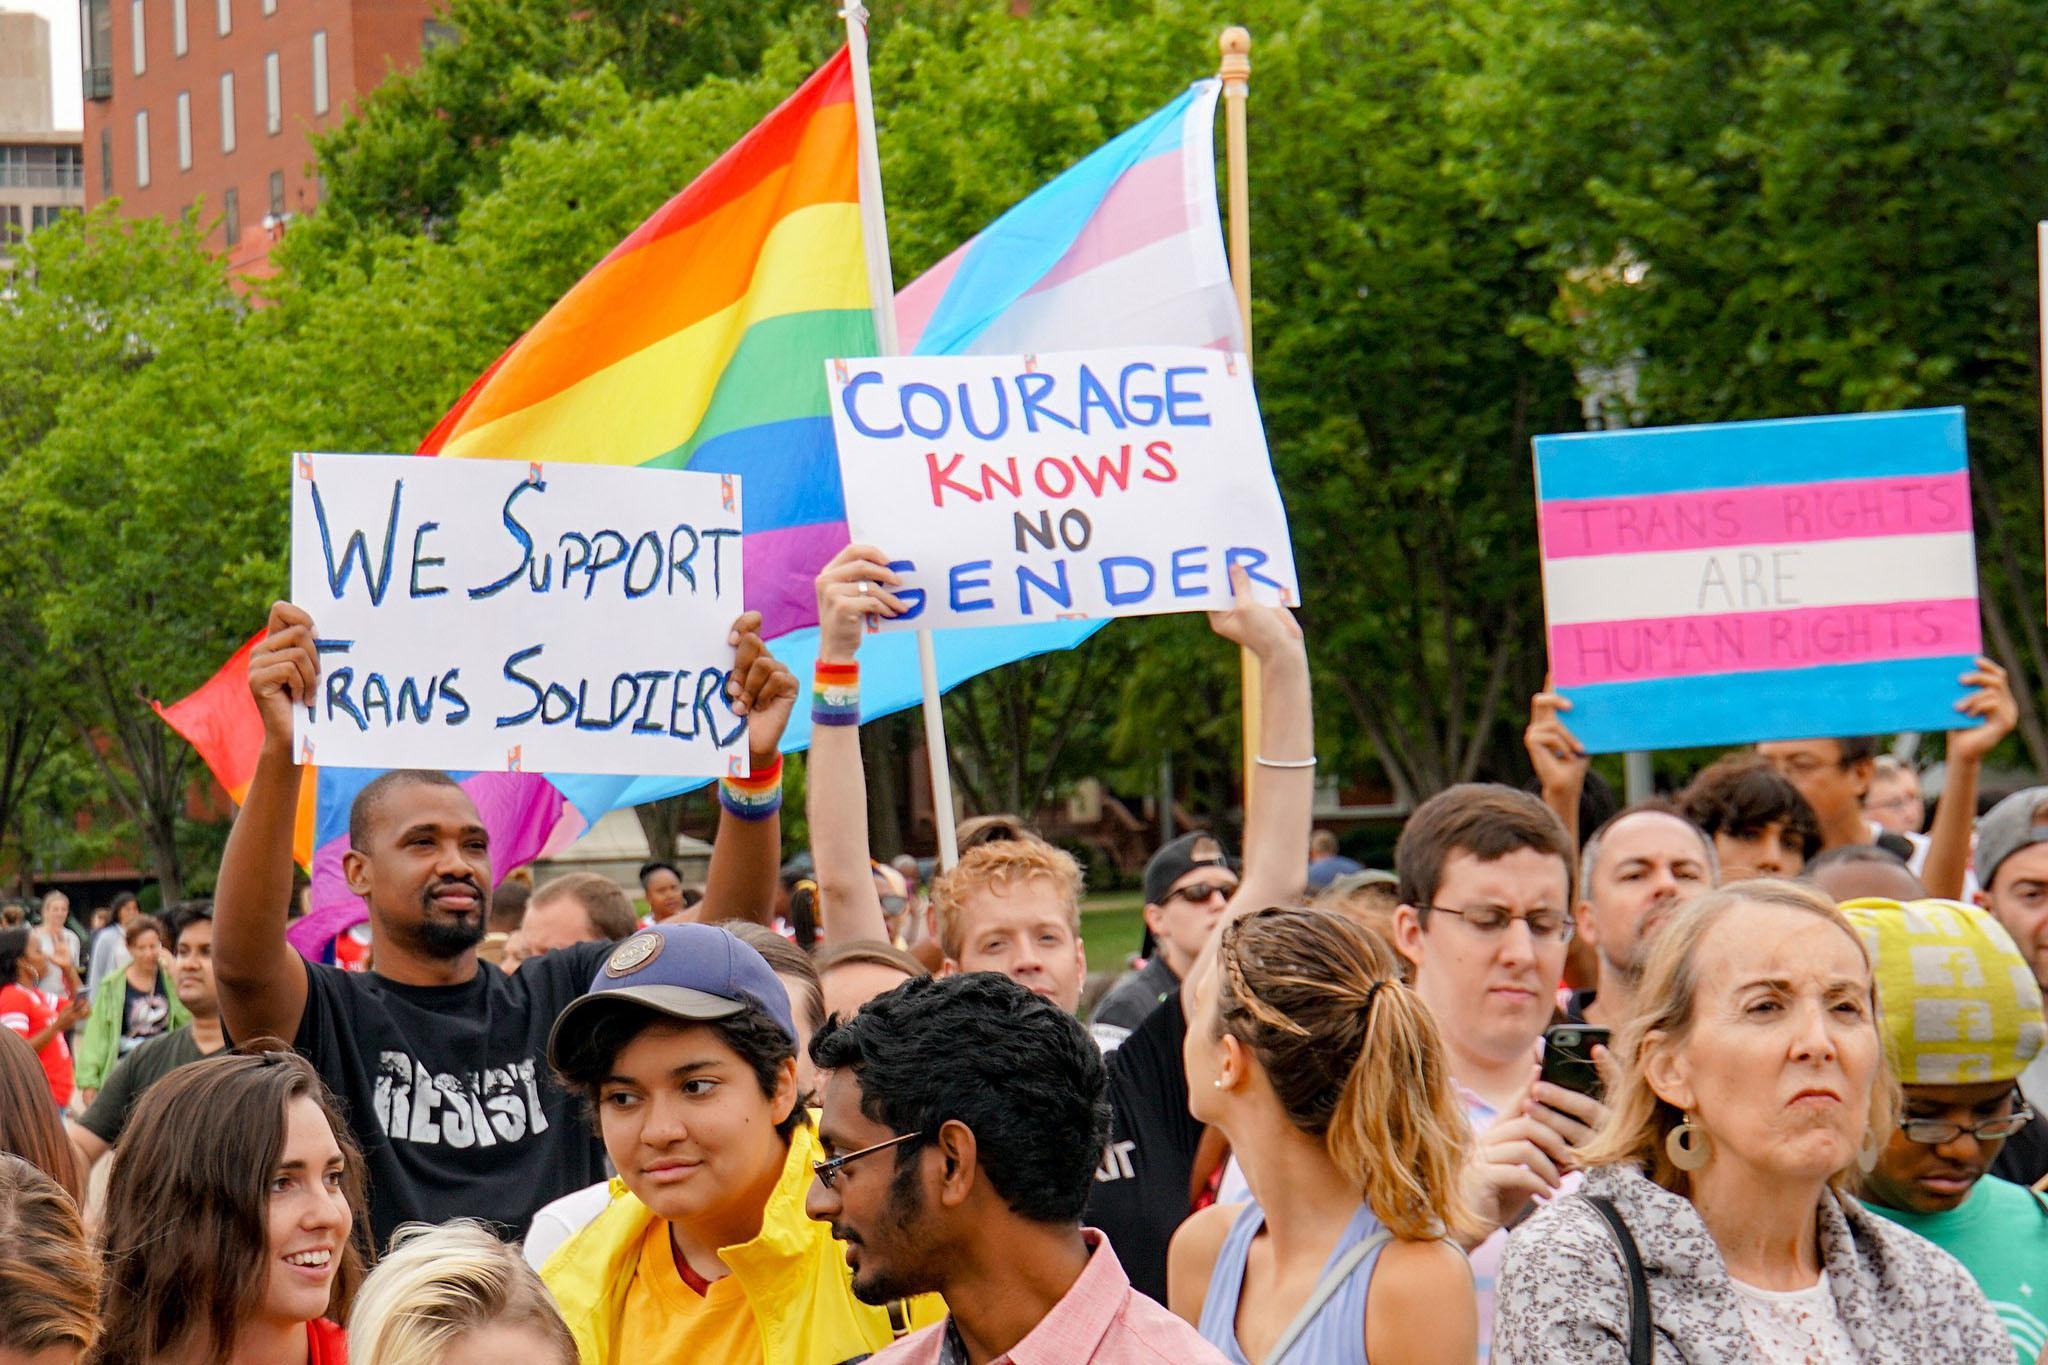 <p>Protesters opposed to the Trump Administration's military transgender ban march in Washington, D.C., July 29, 2107.</p>